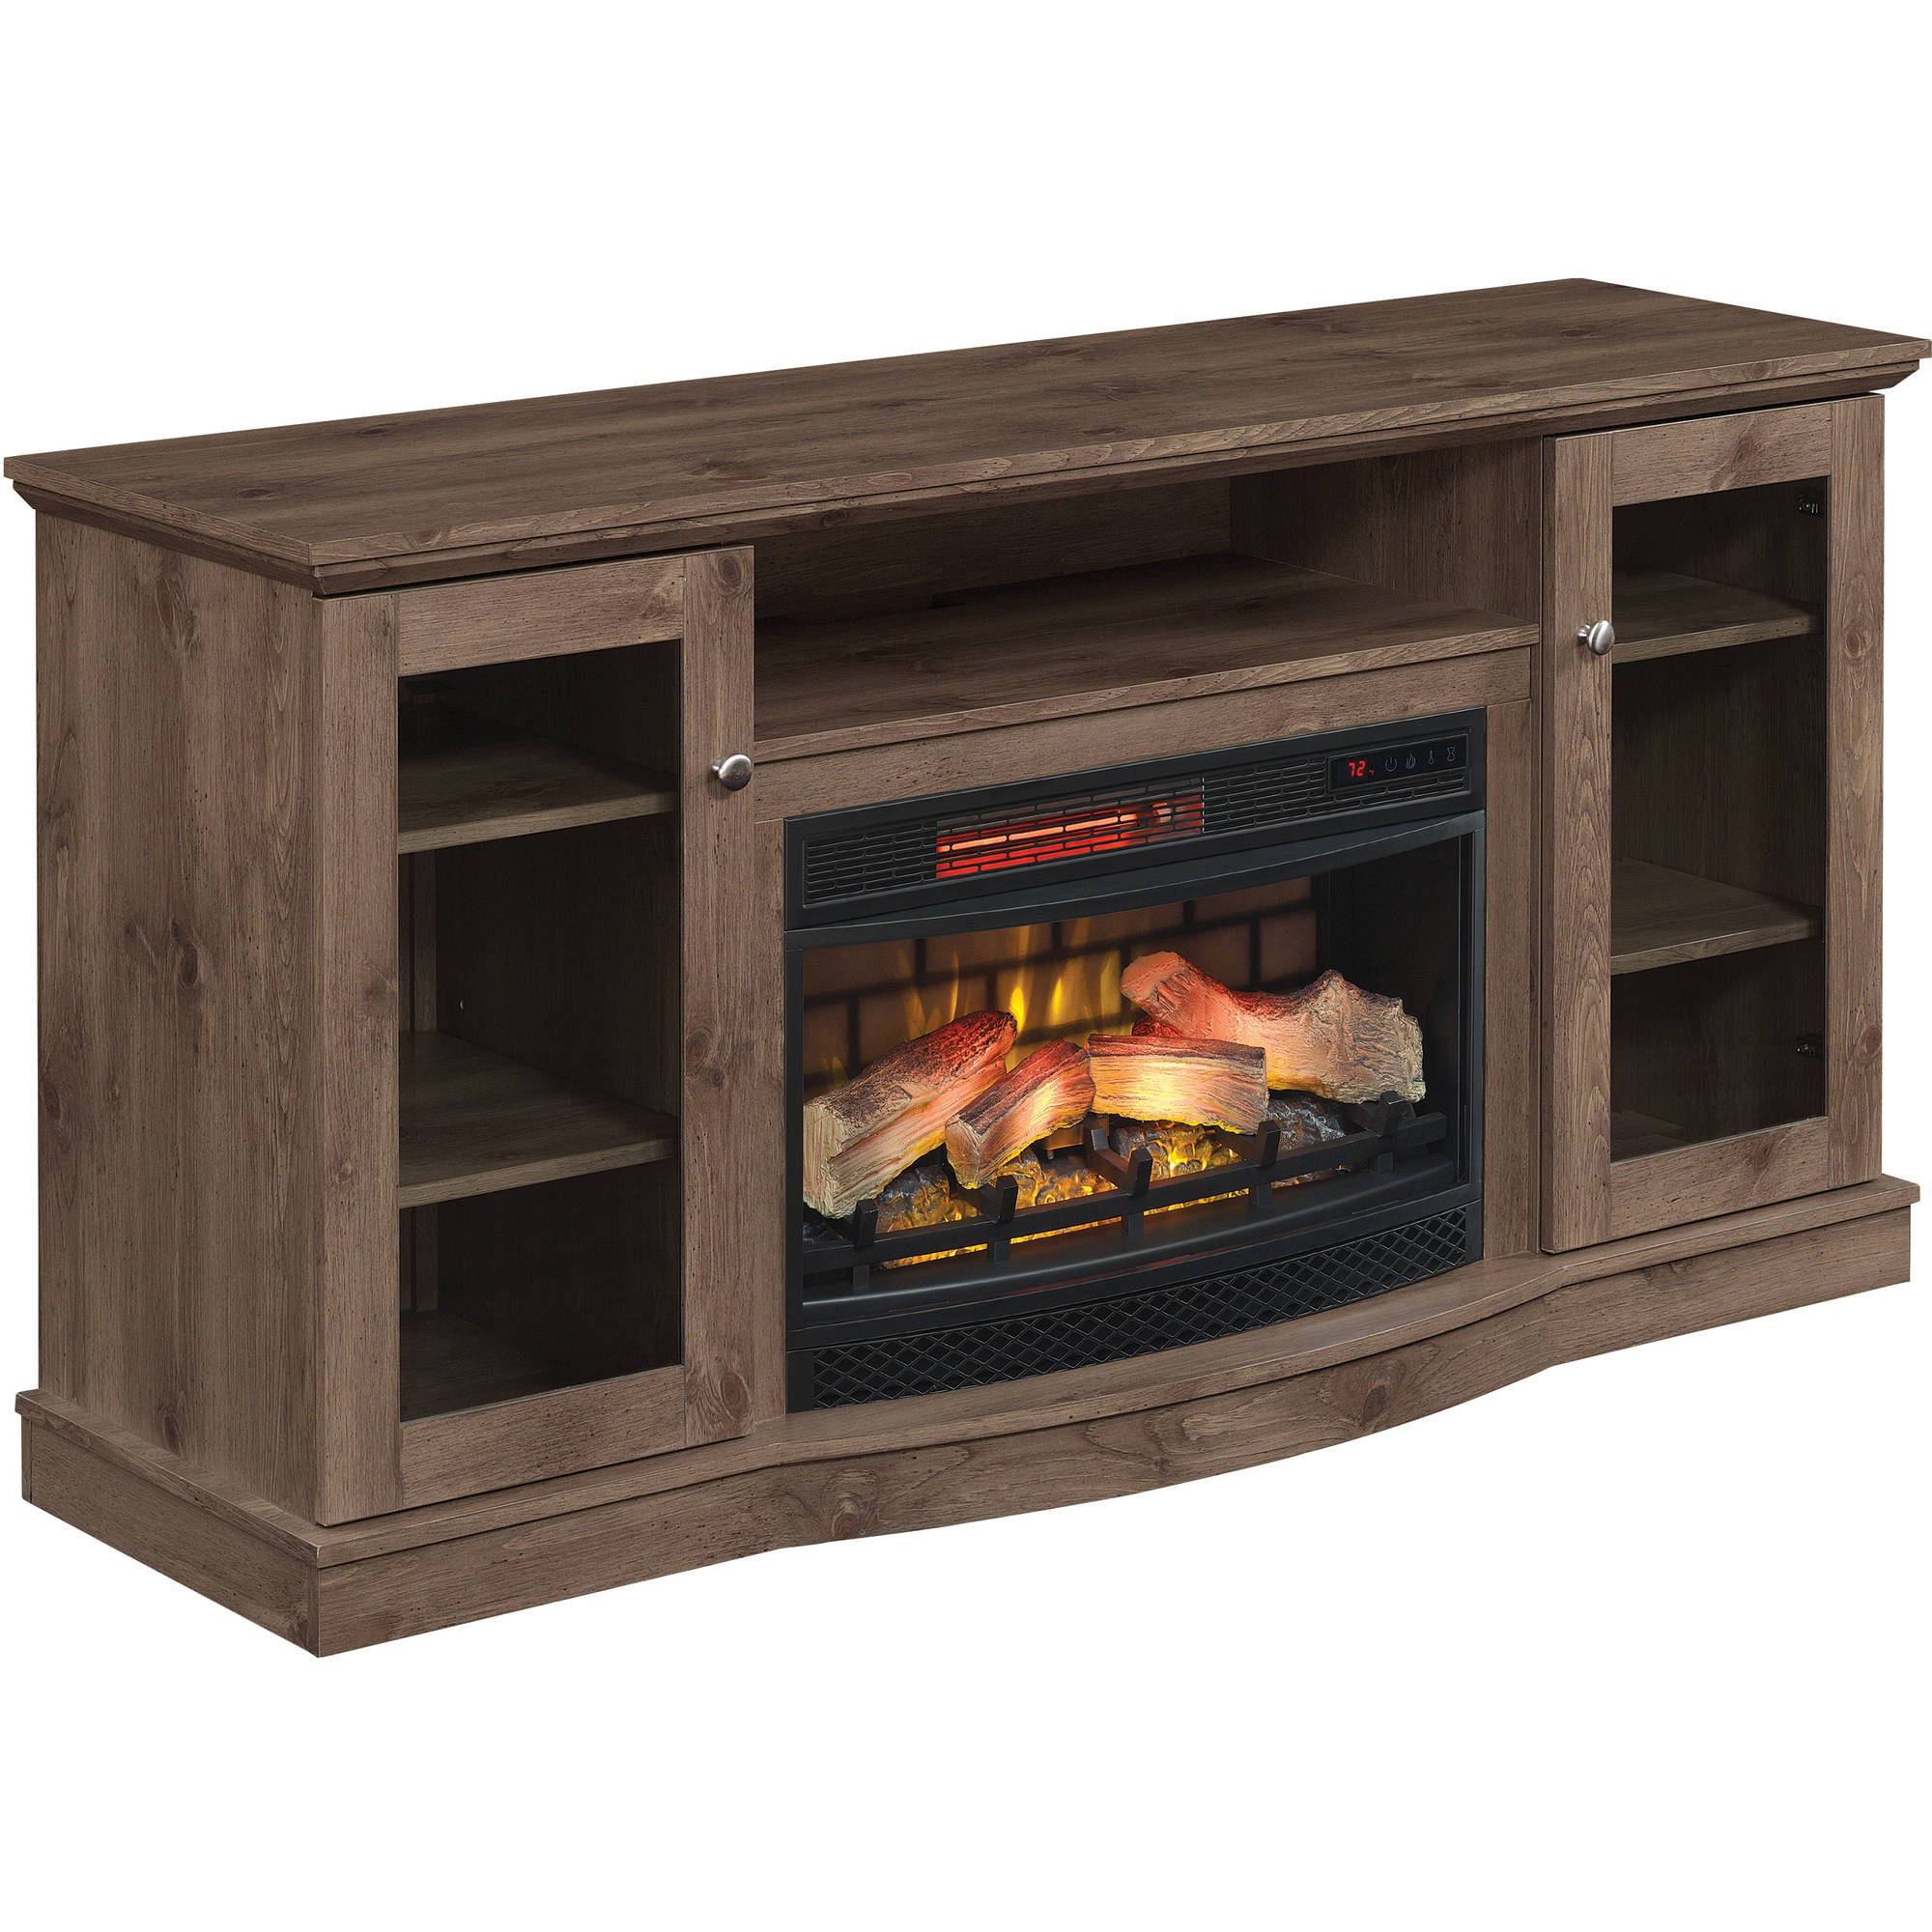 costco inch mount tv menards wall chimney and ideas ed decorating free fireplace stanton electric